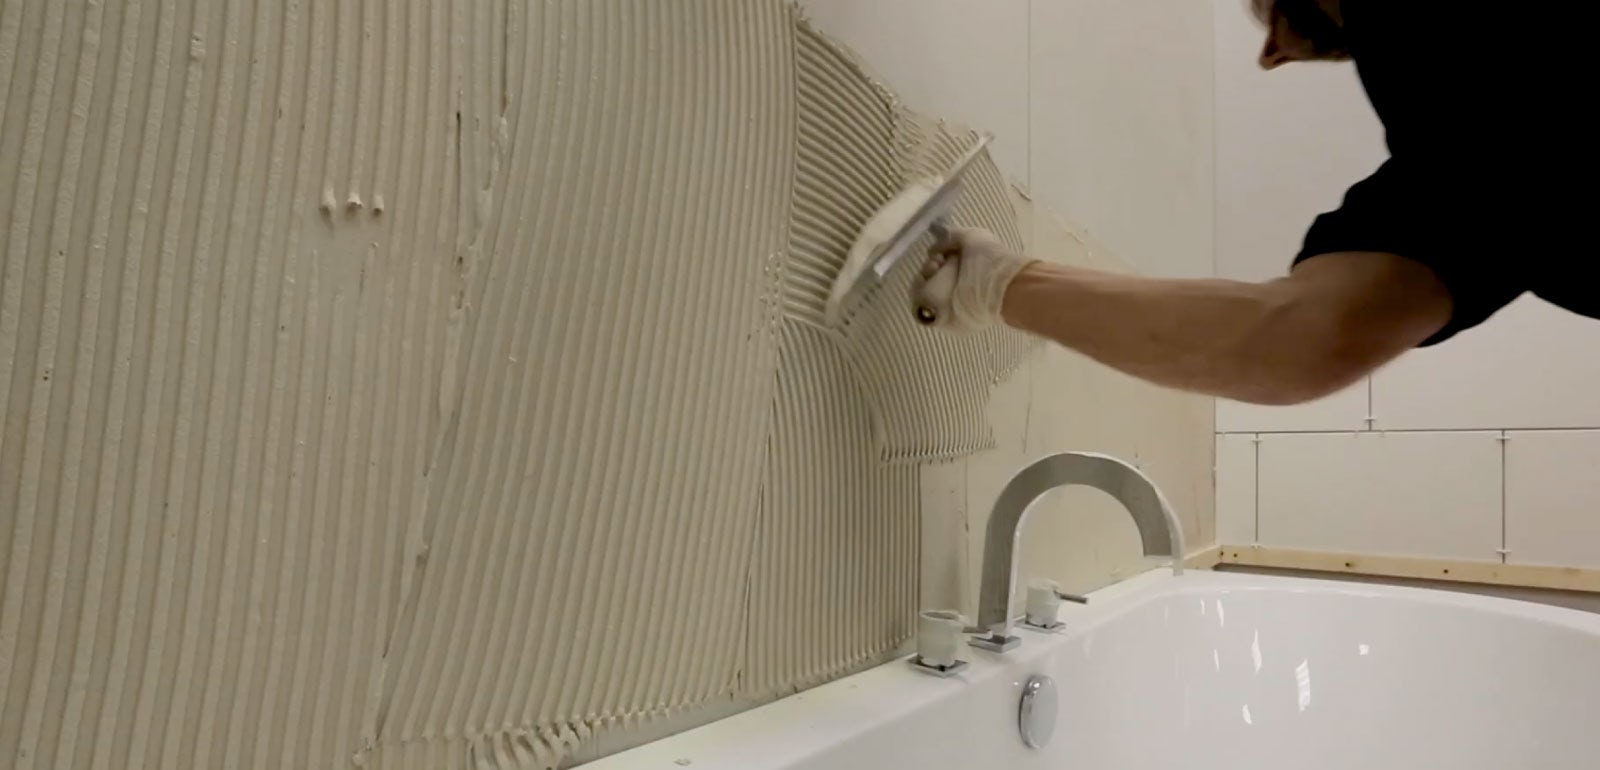 How to mix & apply tile adhesive & work out how much you need